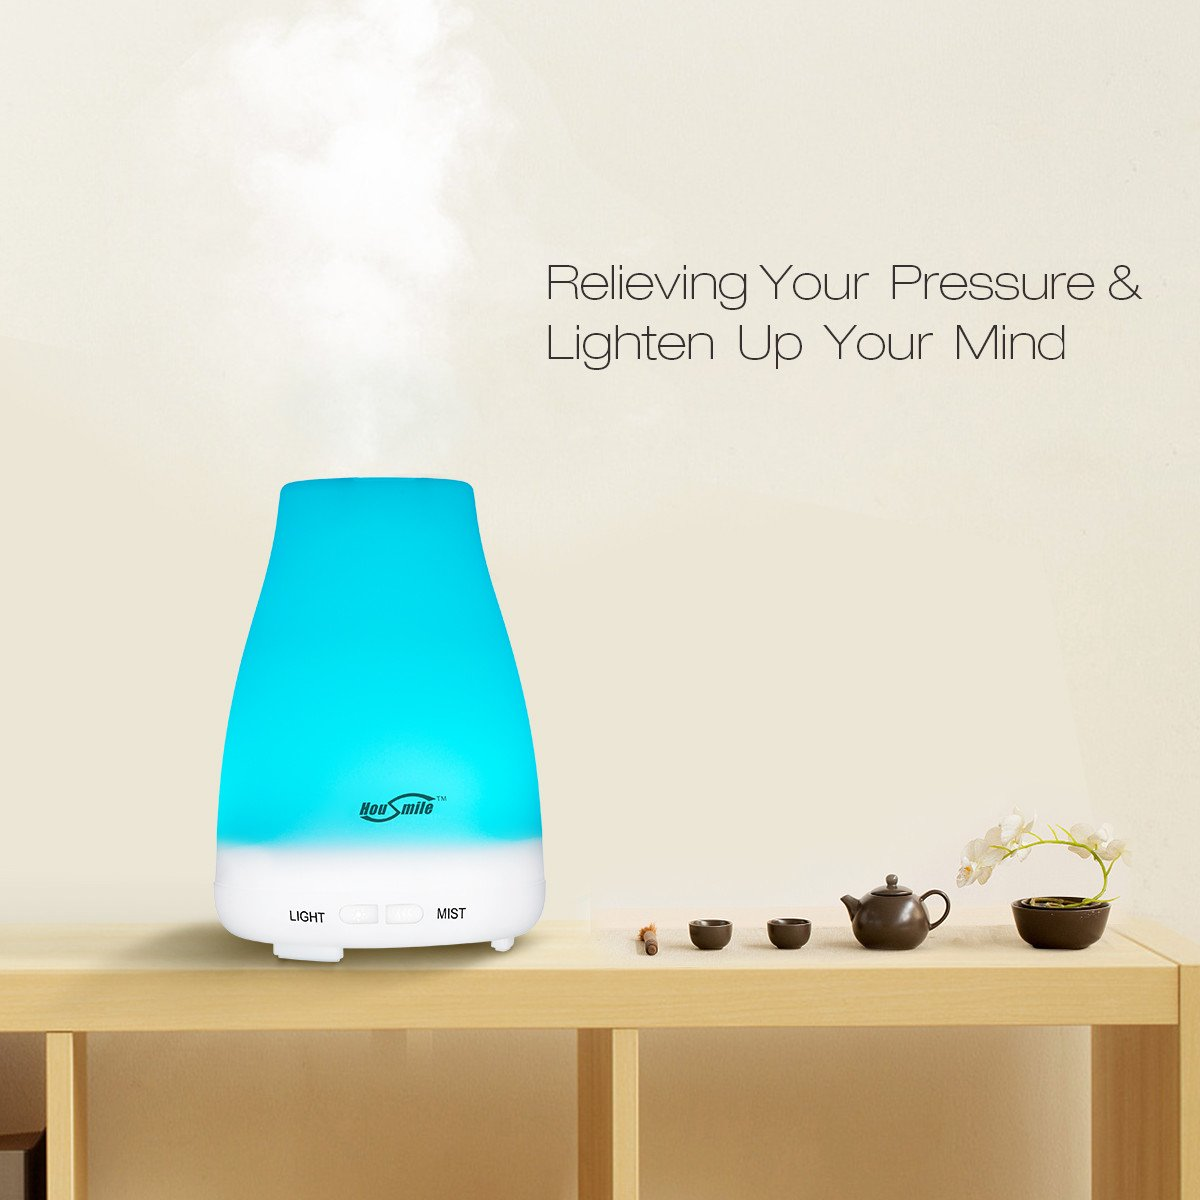 Housmile Essential Oil Diffuser, 100ml Cool Mist Aroma Humidifier for Aromatherapy with changing 7 Color LED Lights, Waterless Auto Shut-off and Adjustable Mist mode